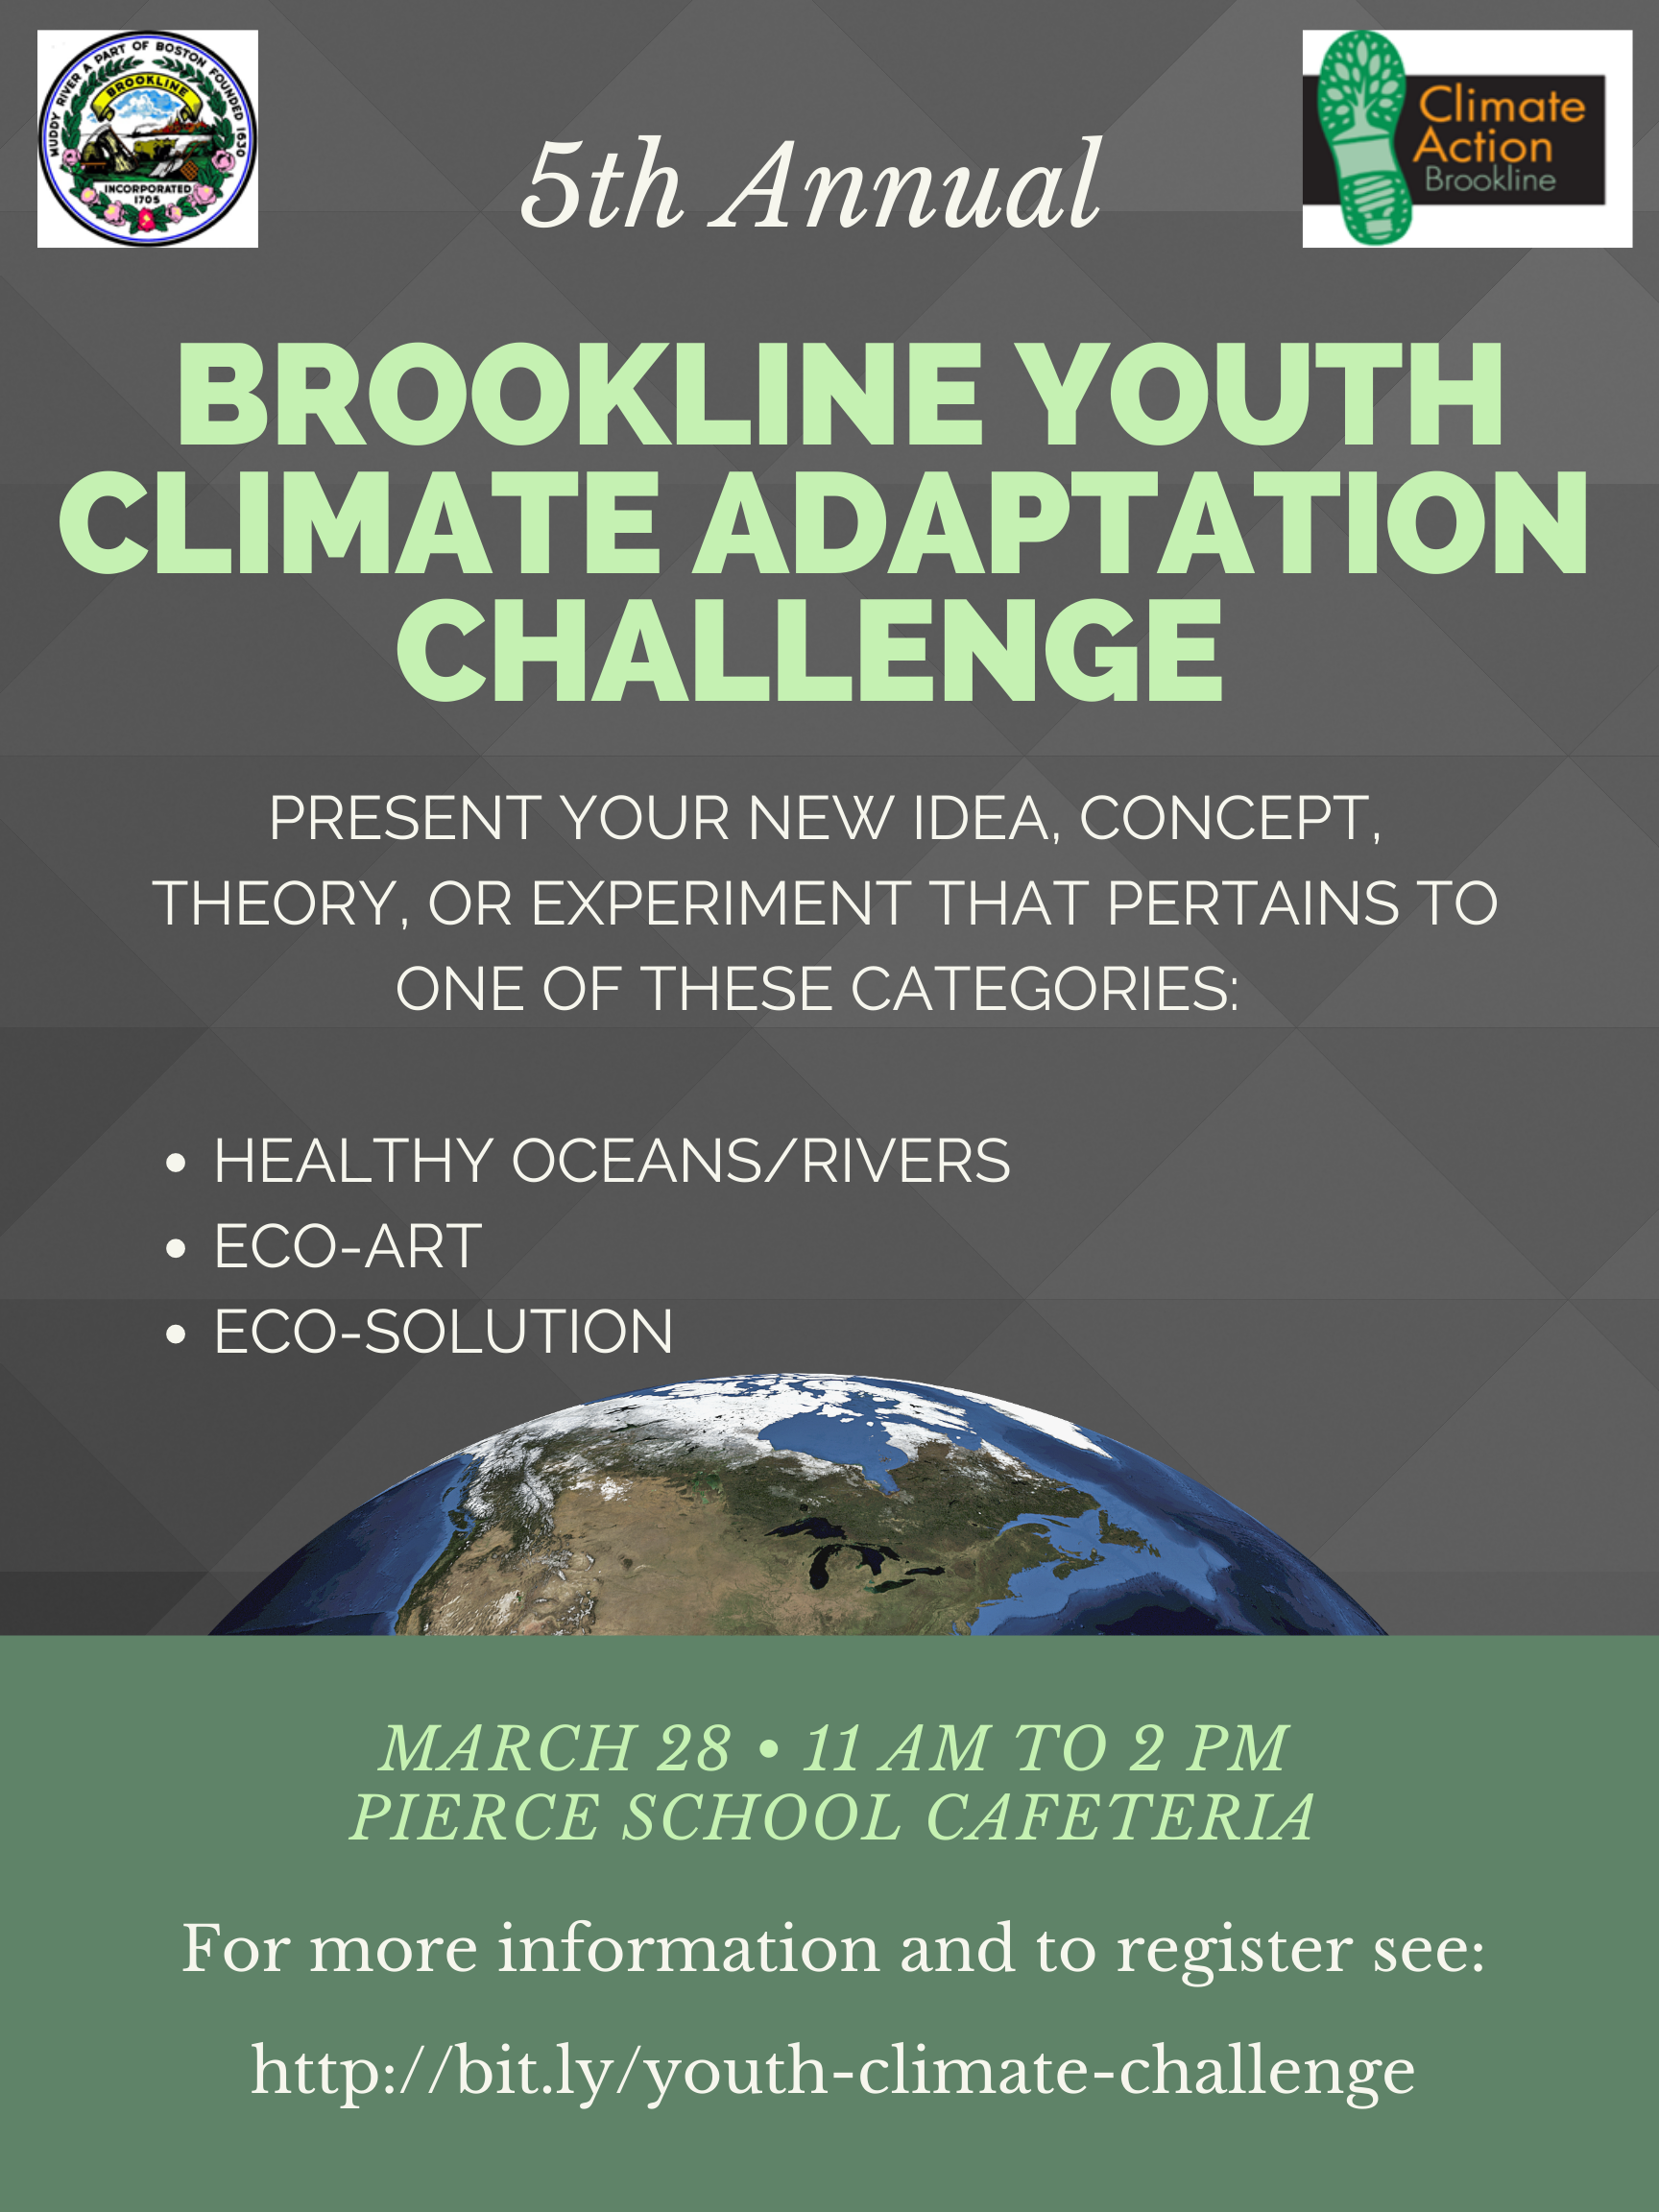 5th Annual Brookline Youth Climate Adaptation Challenge